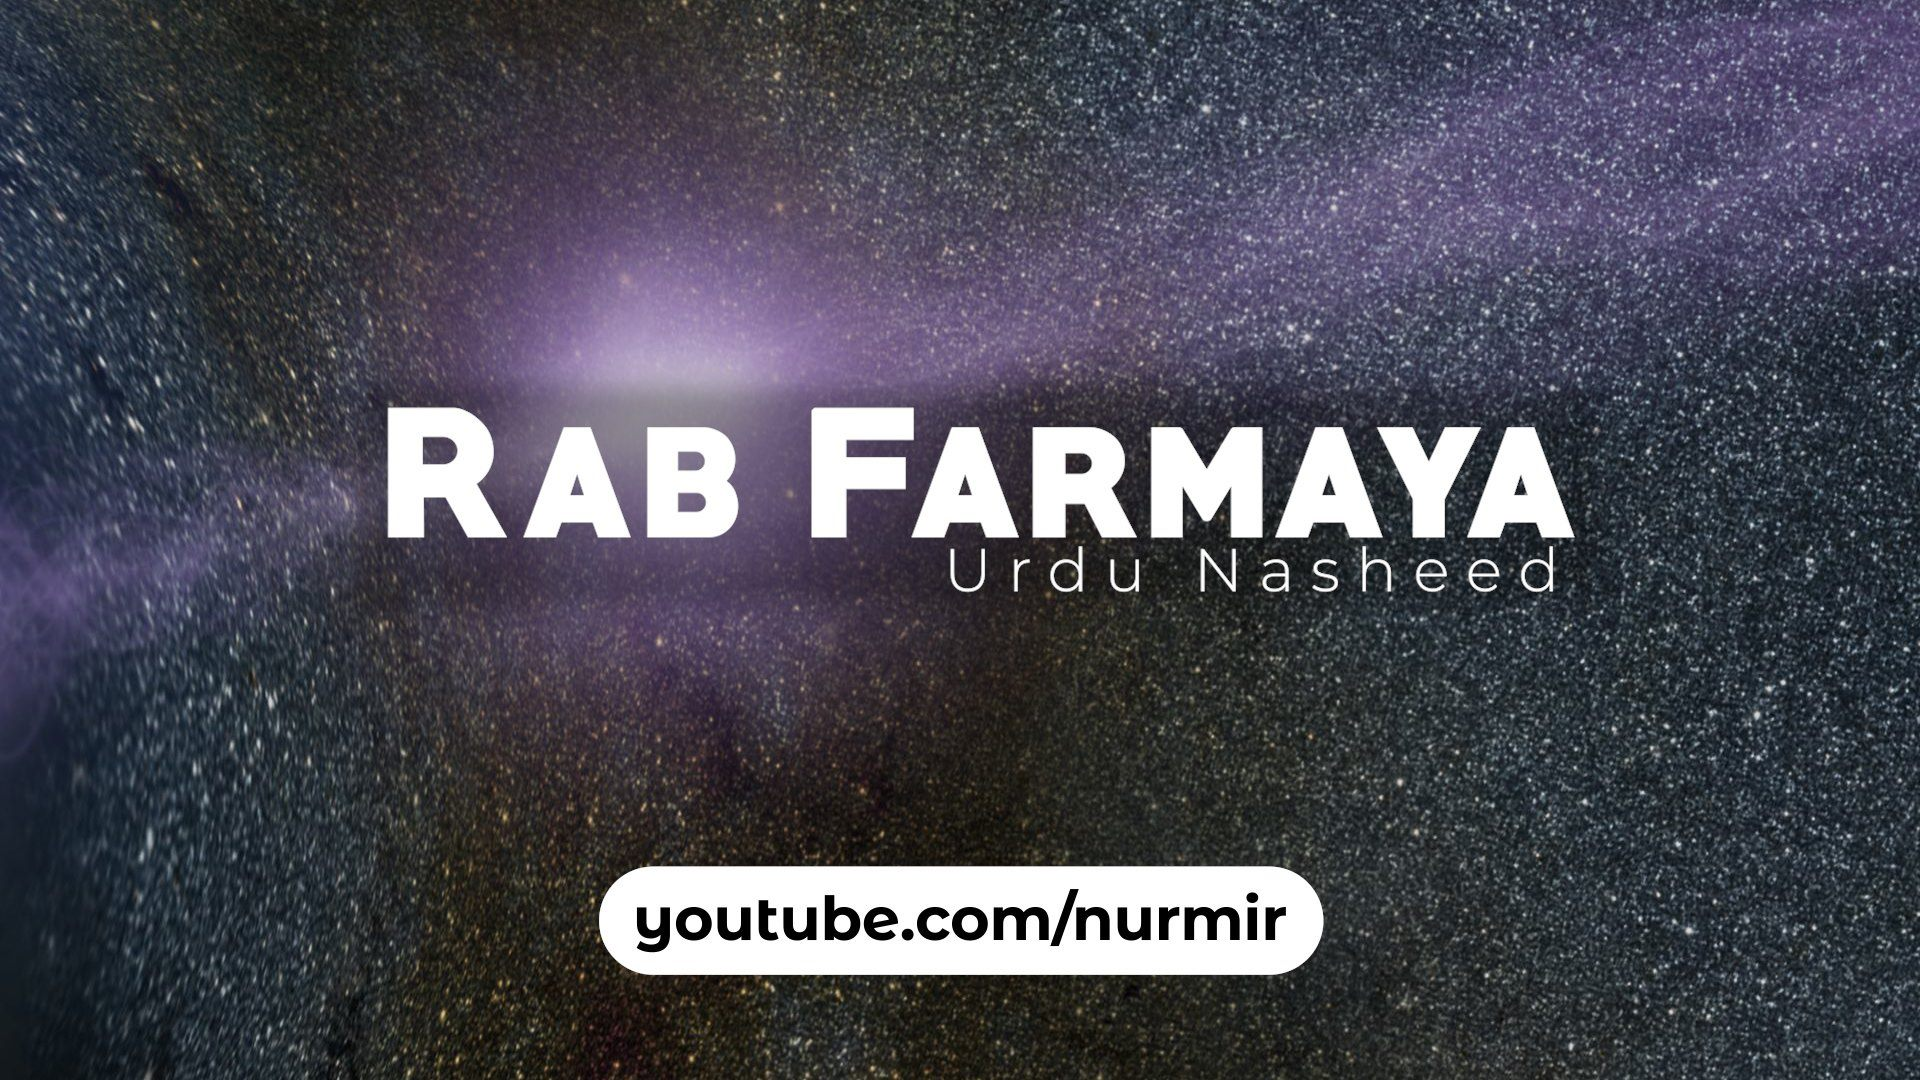 Rab Farmaya Sufi Song Nasheed Urdu